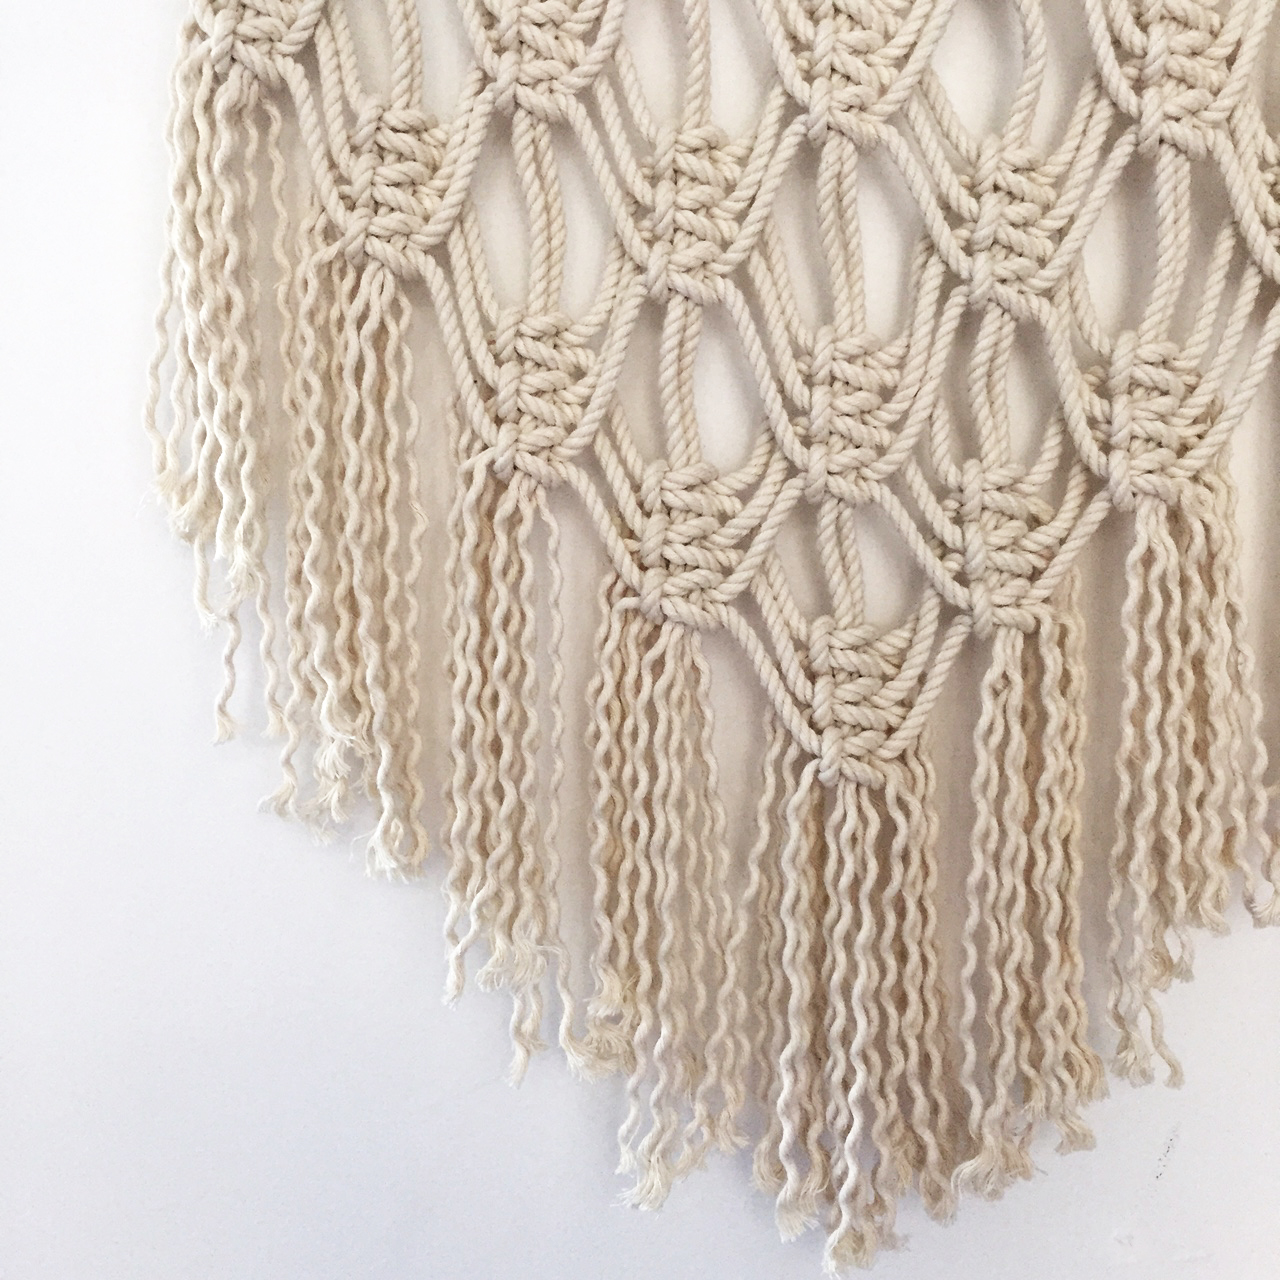 Macrame  Wall Hanging Workshop - The Corner Store Gallery